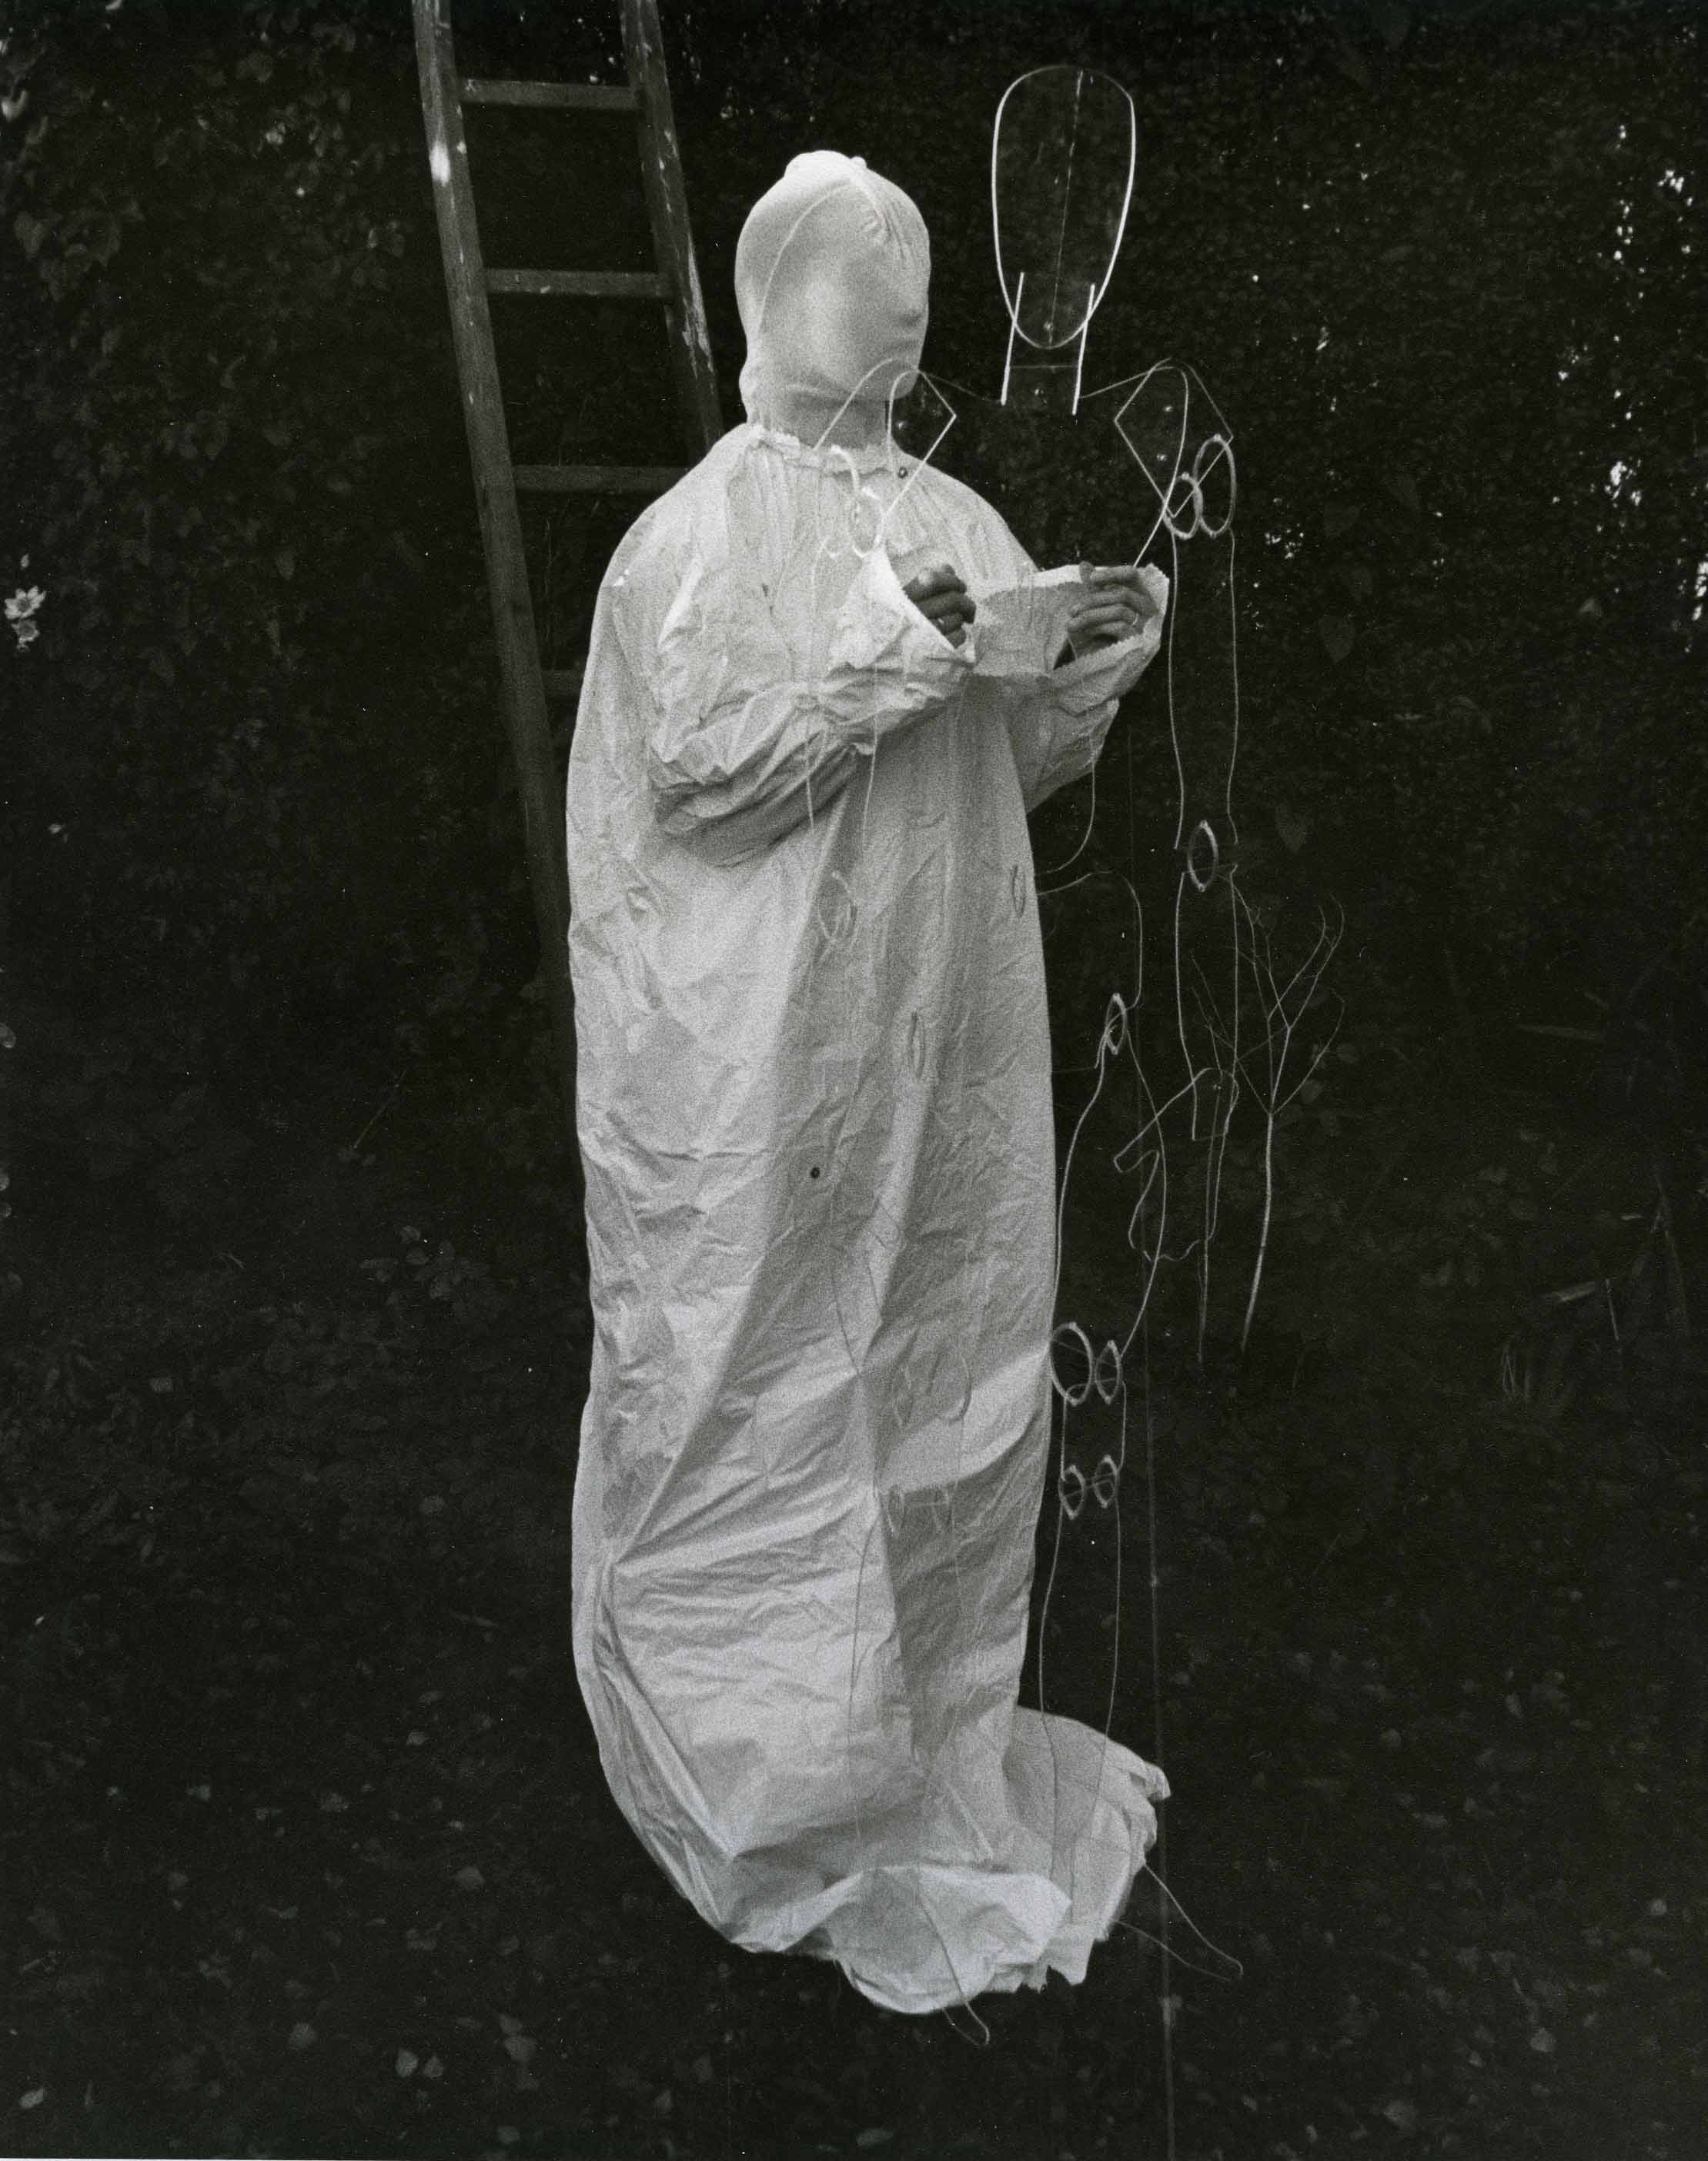 Fig. 1 Elaine Shemilt, iamdead, 1974, photograph from the set. Courtesy of the artist